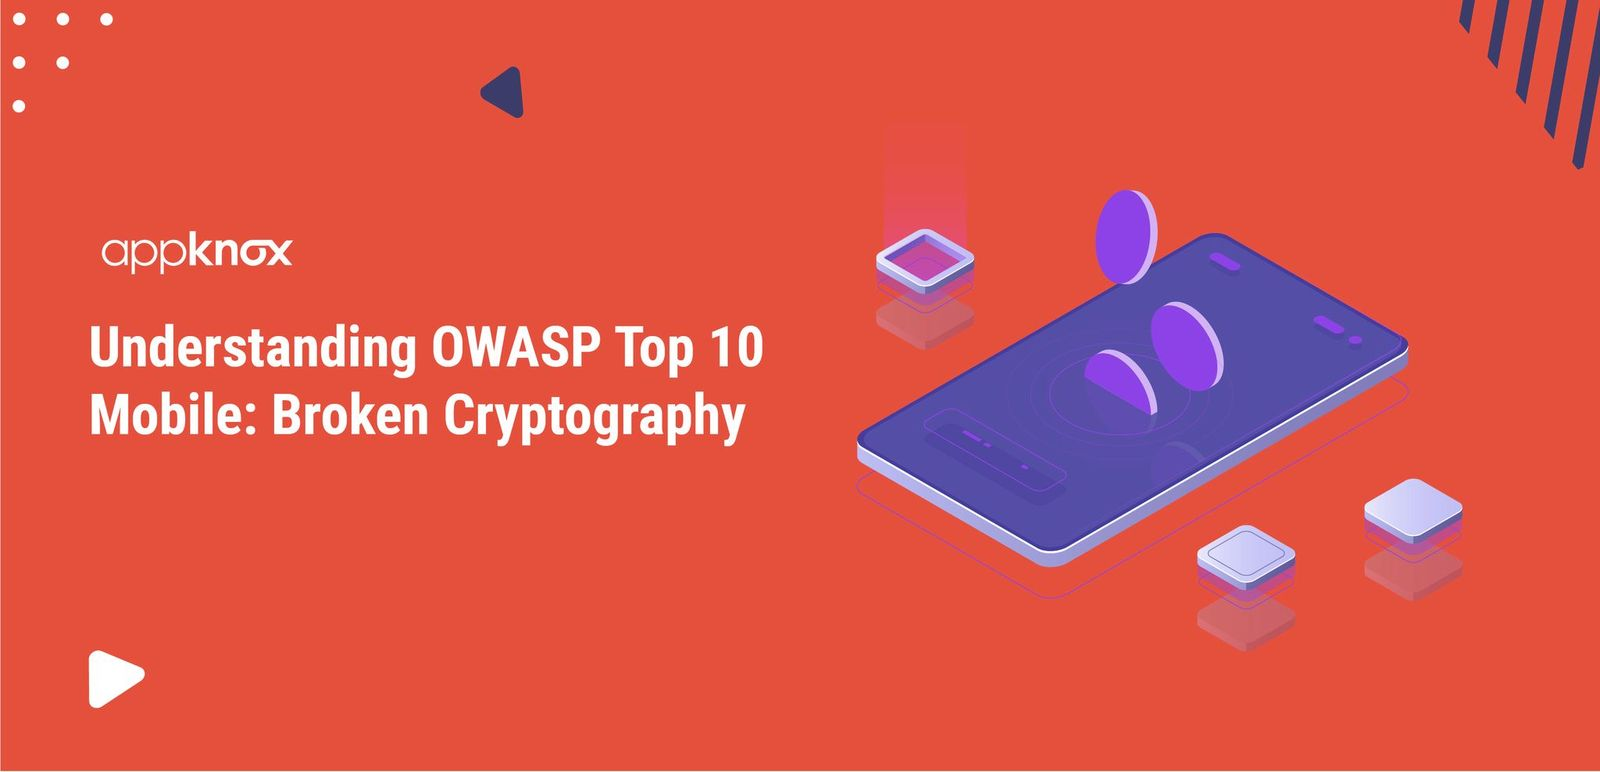 Understanding OWASP Top 10 Mobile: Broken Cryptography